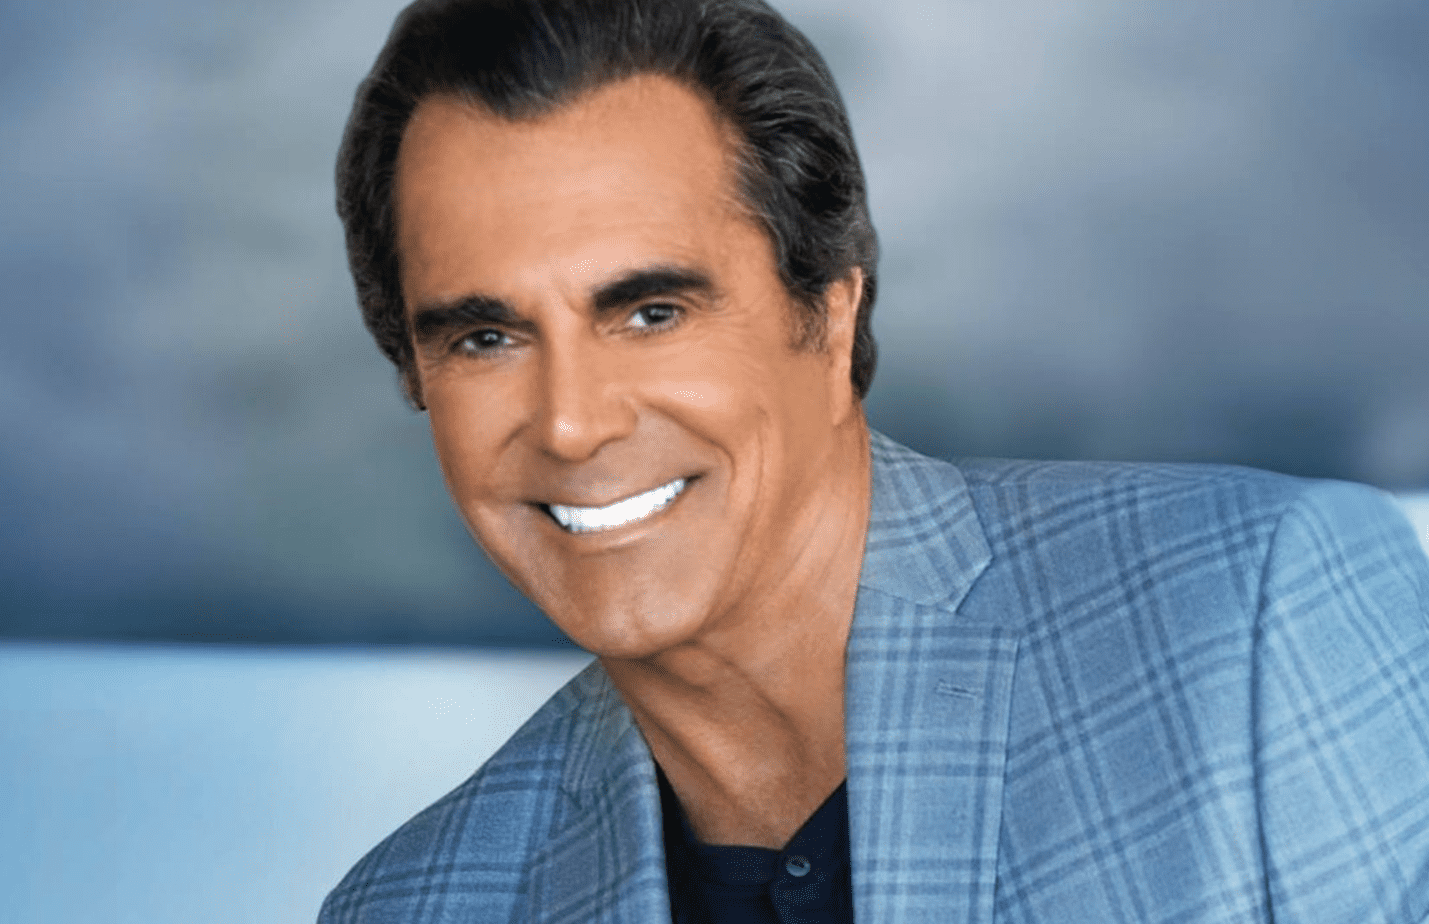 Farewell to Carman, a champion of God who led us to THE CHAMPION